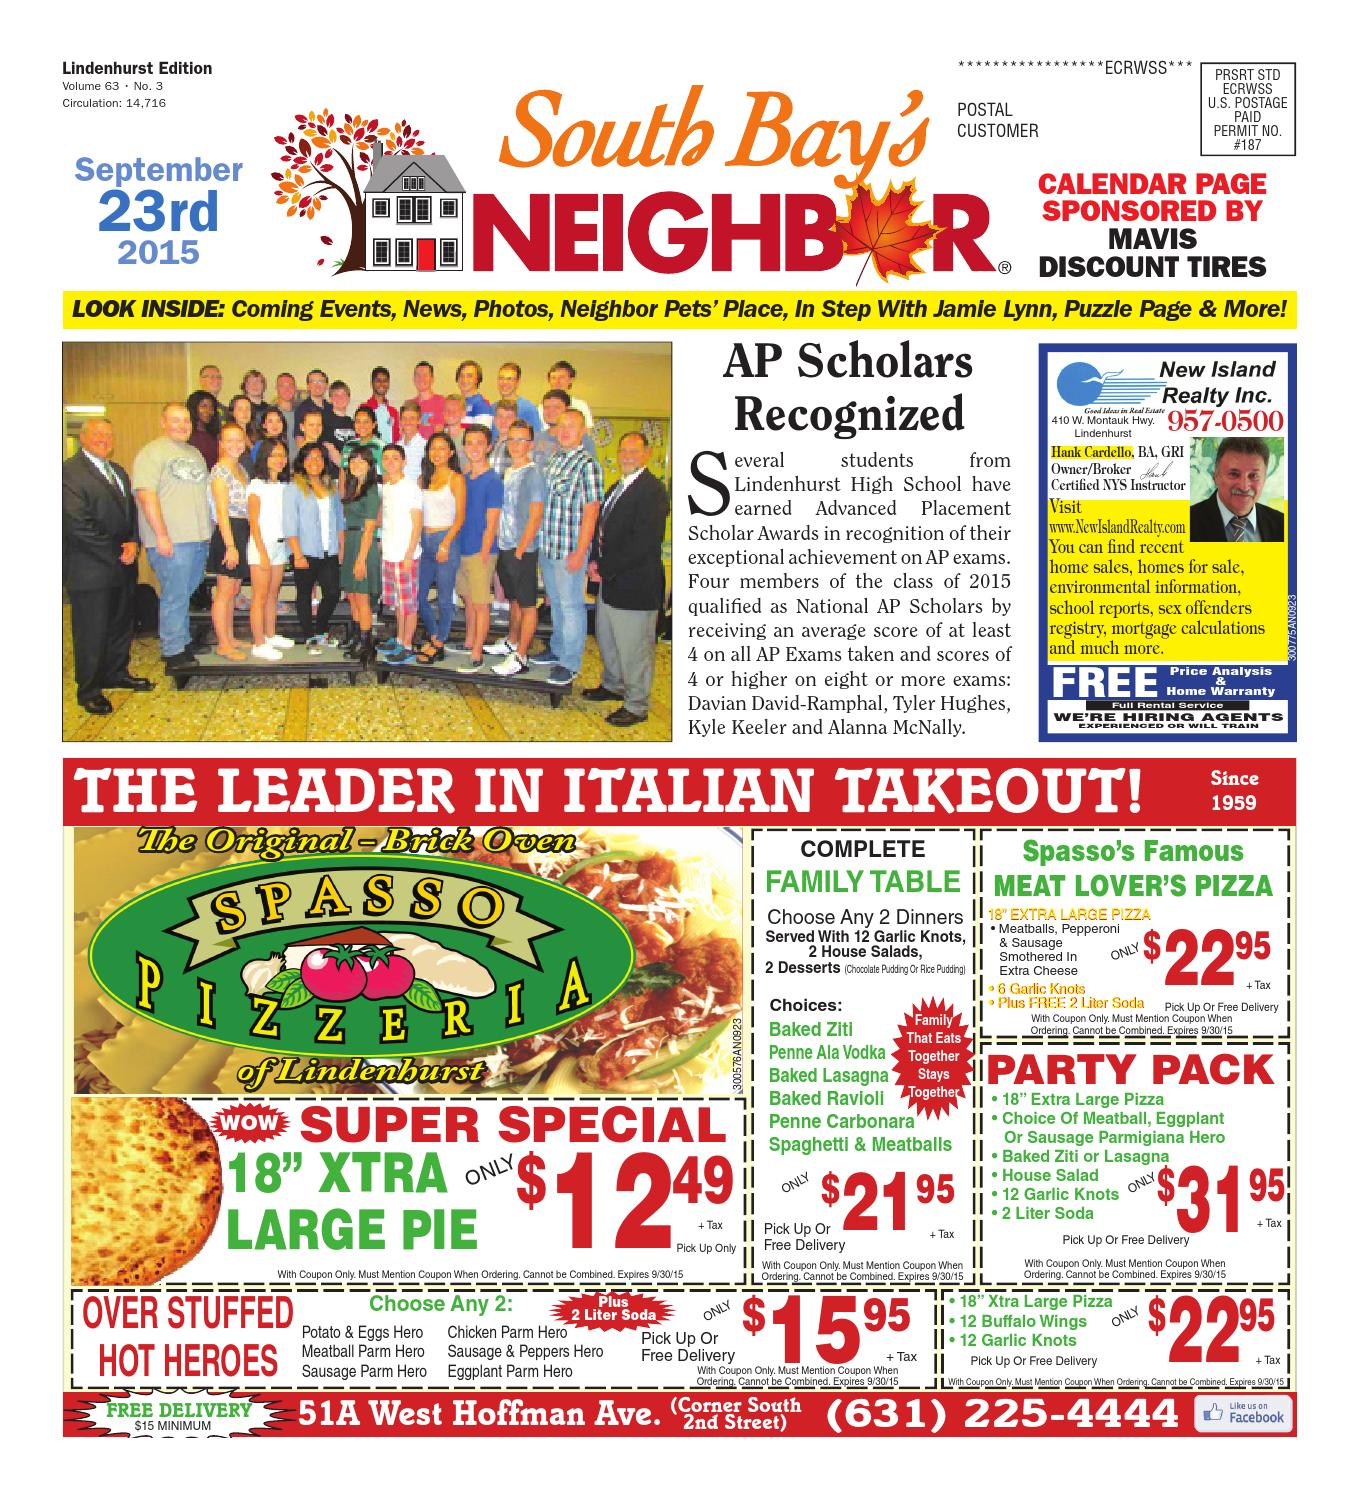 September 23 2015 Lindenhurst by South Bay s Neighbor Newspapers